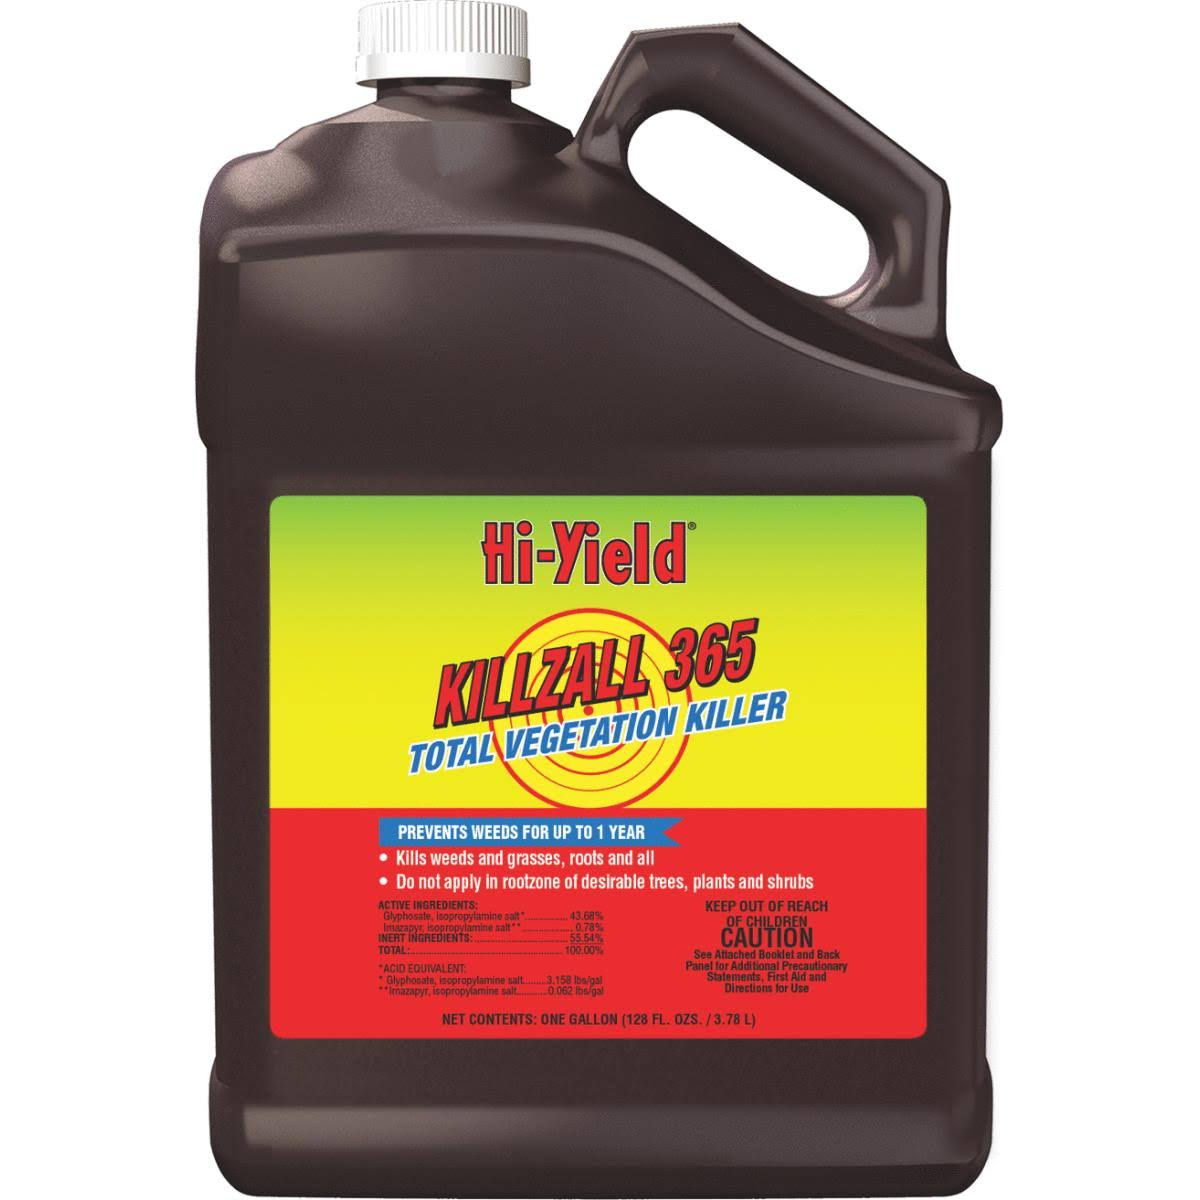 Hi Yield Killzall 365 Concentrate Weed and Grass Killer - 1gal